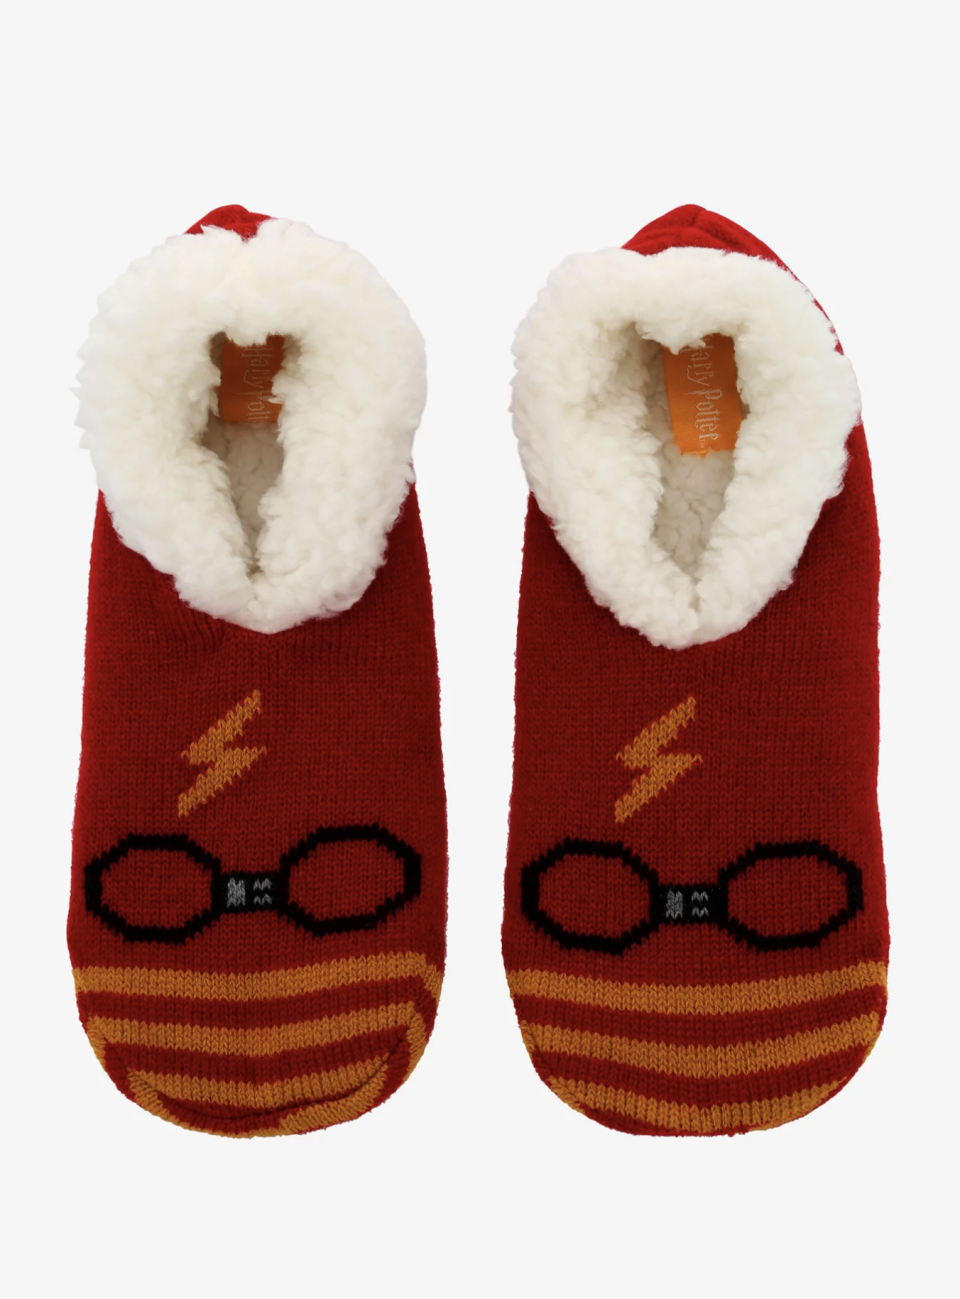 "<p><strong>Harry Potter</strong></p><p>hottopic.com</p><p><strong>$14.90</strong></p><p><a href=""https://go.redirectingat.com?id=74968X1596630&url=https%3A%2F%2Fwww.hottopic.com%2Fproduct%2Fharry-potter-icon-cozy-slippers%2F13590424.html&sref=https%3A%2F%2Fwww.seventeen.com%2Ffashion%2Fg2651%2Fharry-potter-gifts%2F"" rel=""nofollow noopener"" target=""_blank"" data-ylk=""slk:Shop Now"" class=""link rapid-noclick-resp"">Shop Now</a></p><p>These cozy slippers are as close as you'll get to warming your toes by the fireplace in the Gryffindor common room.</p>"